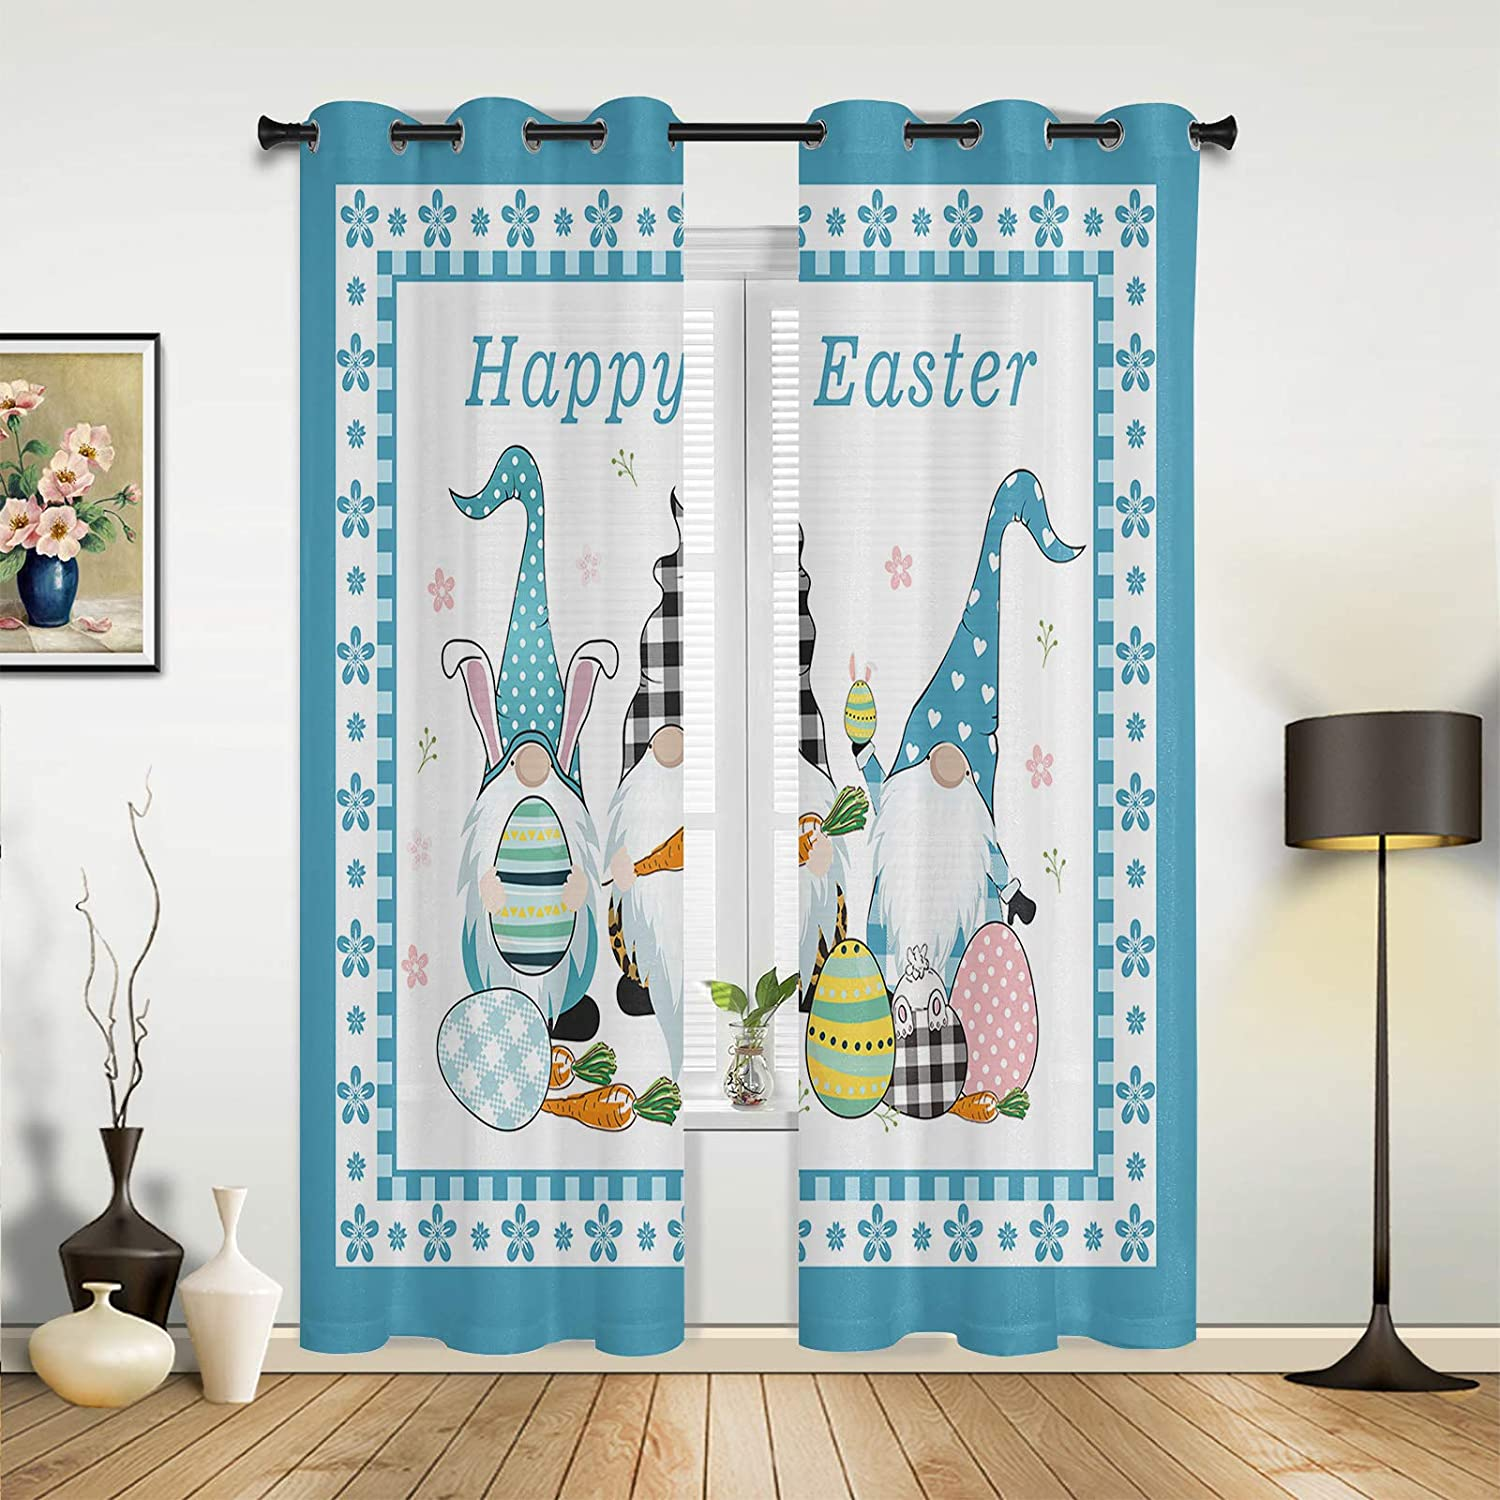 Window New product! New type Sheer Curtains for Bedroom Happy Living Room Latest item Funny Easter